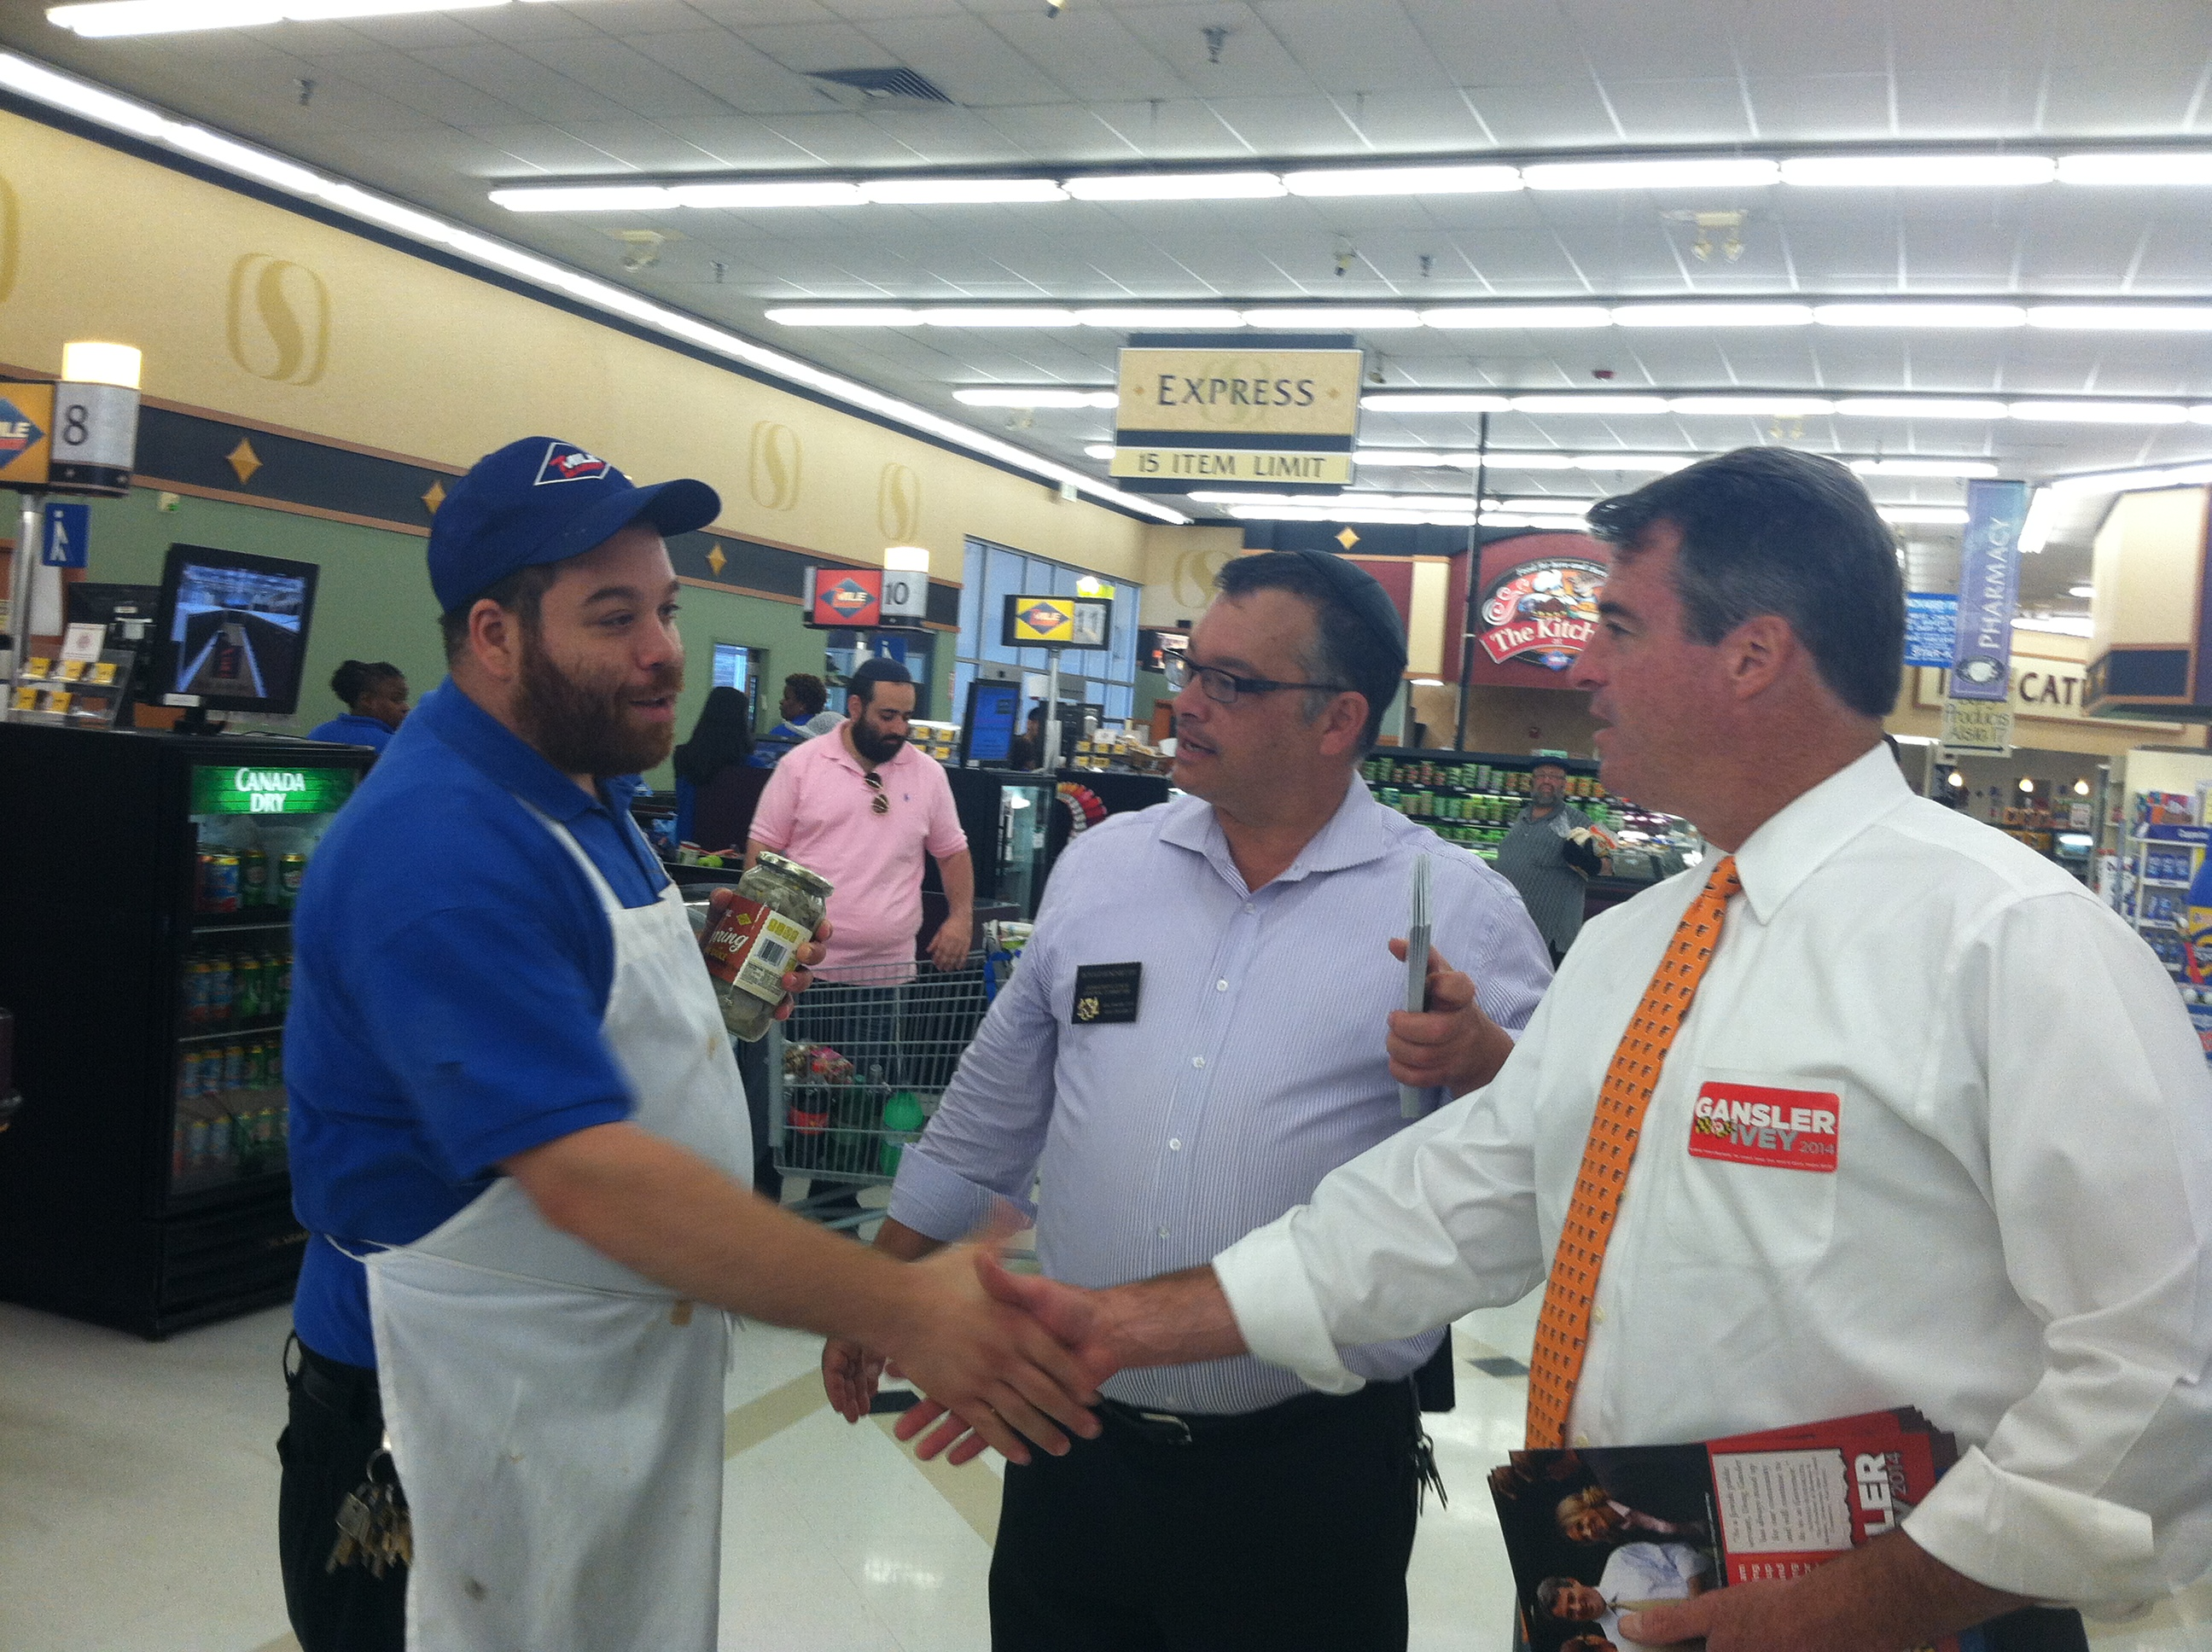 Attorney General Doug Gansler, who is running for governor, spent the morning at Seven Mile Market talking to customers and employees.